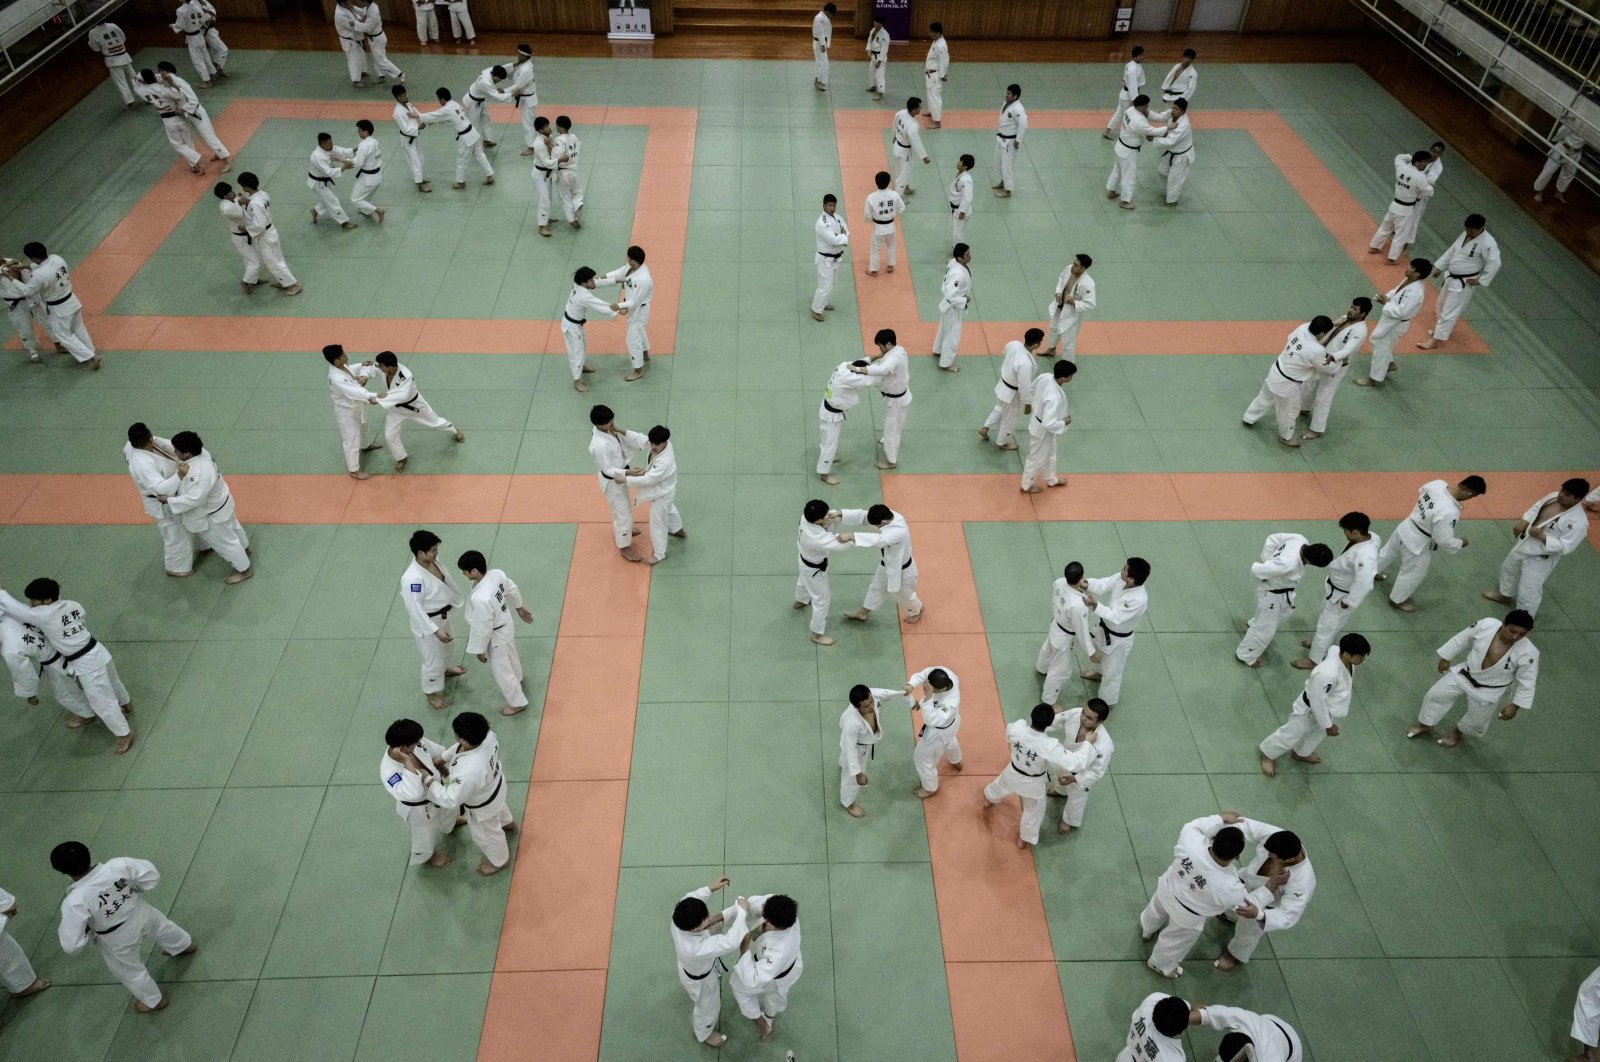 Judokas wrestle during a weekly freestyle practice session in Tokyo, Japan, Feb. 19, 2020. (AFP Photo)